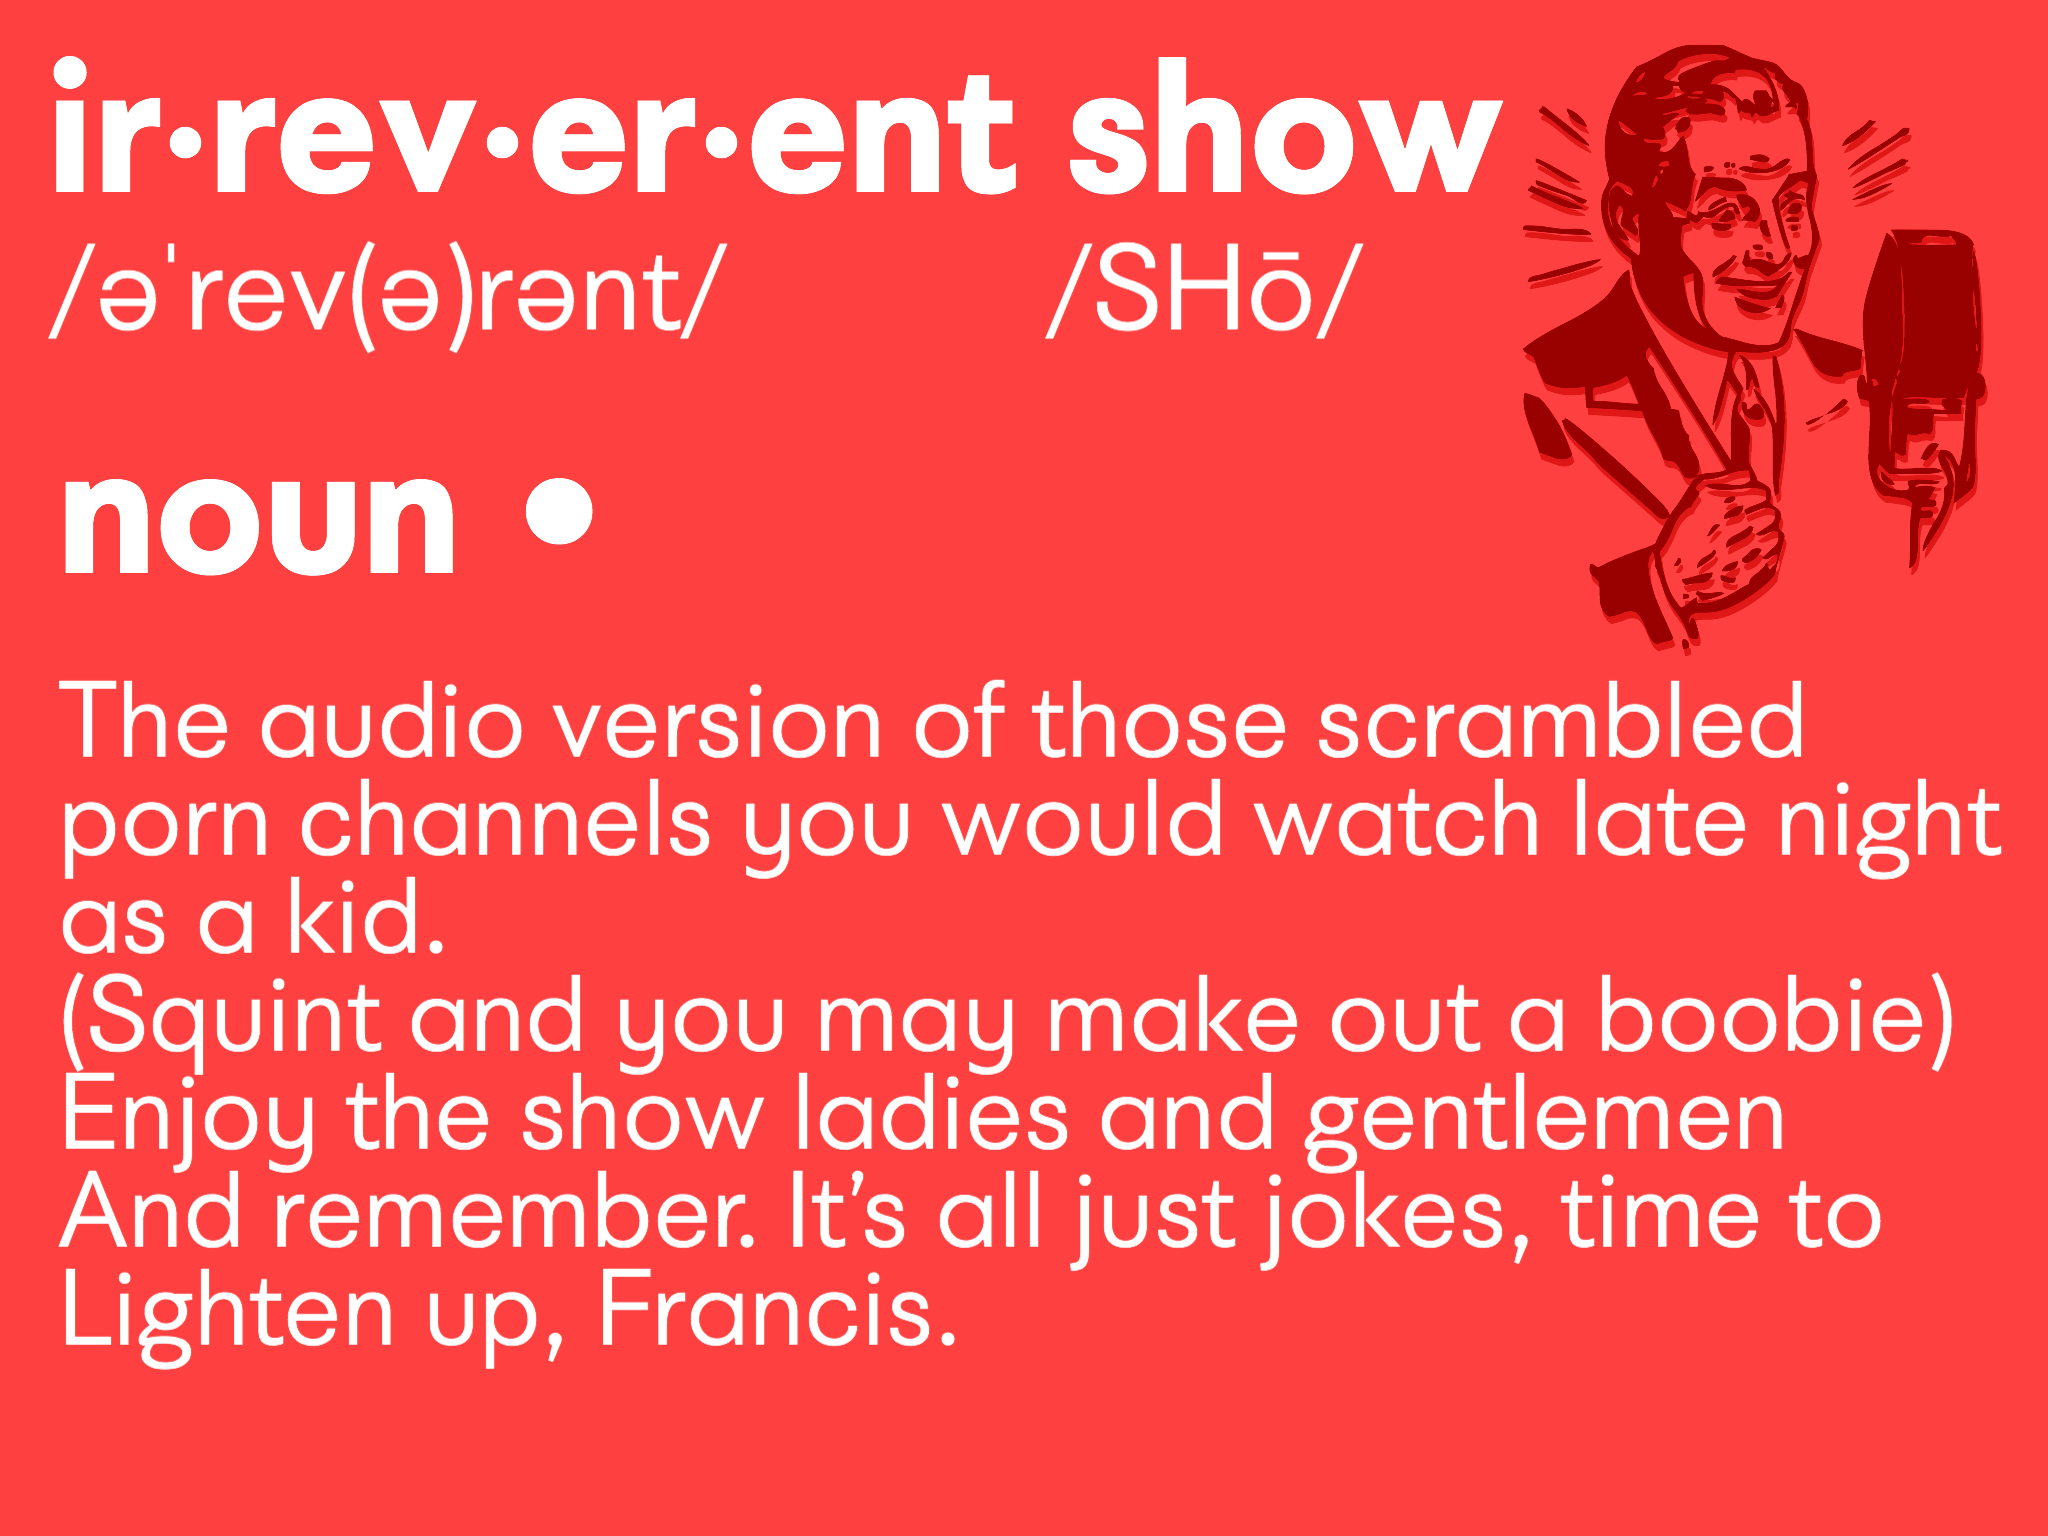 About — The Irreverent Show